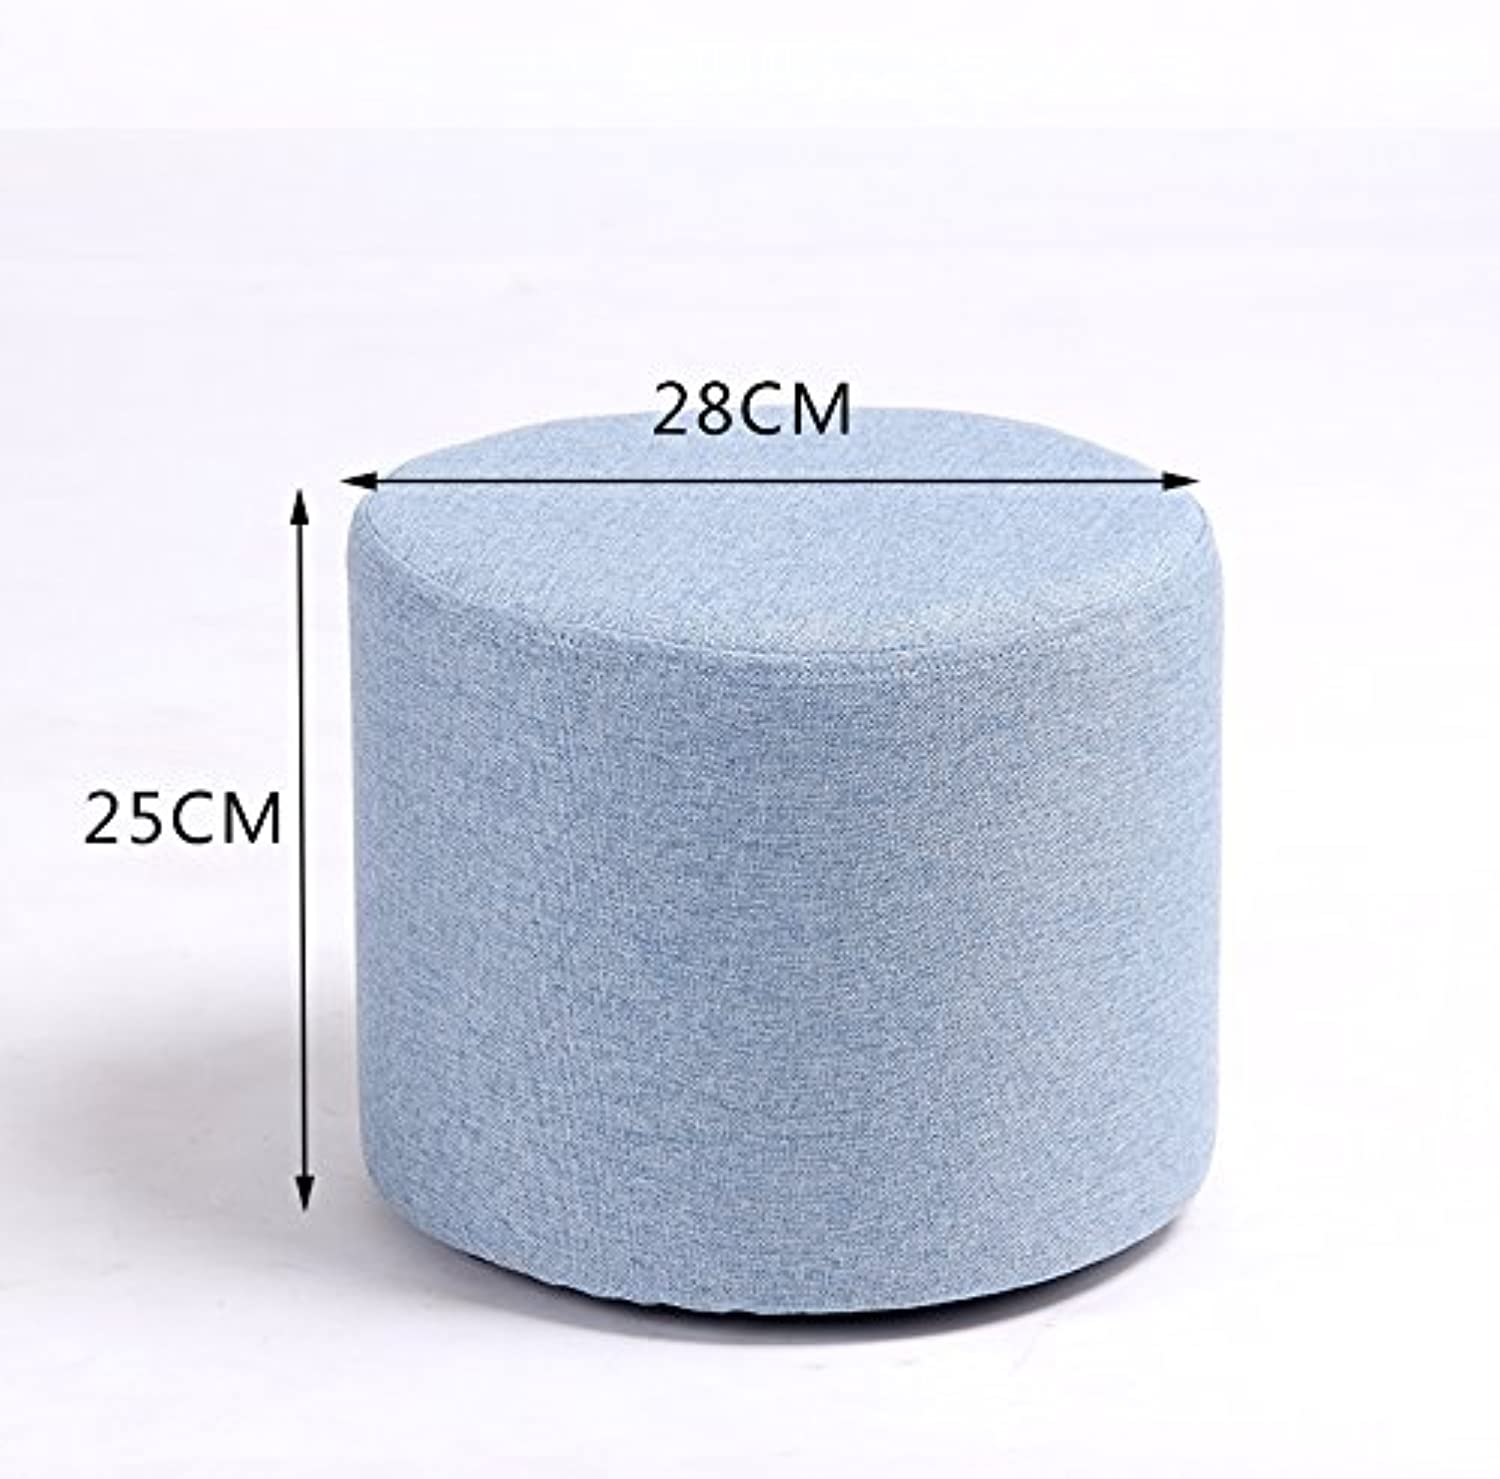 Dana Carrie Stool Stylish Ideas for shoes of Solid Wood Cloth Sofas stools Low stool Round stool wear shoes The Tea Small stools Benches sit Mounds, Light bluee 25  28cm